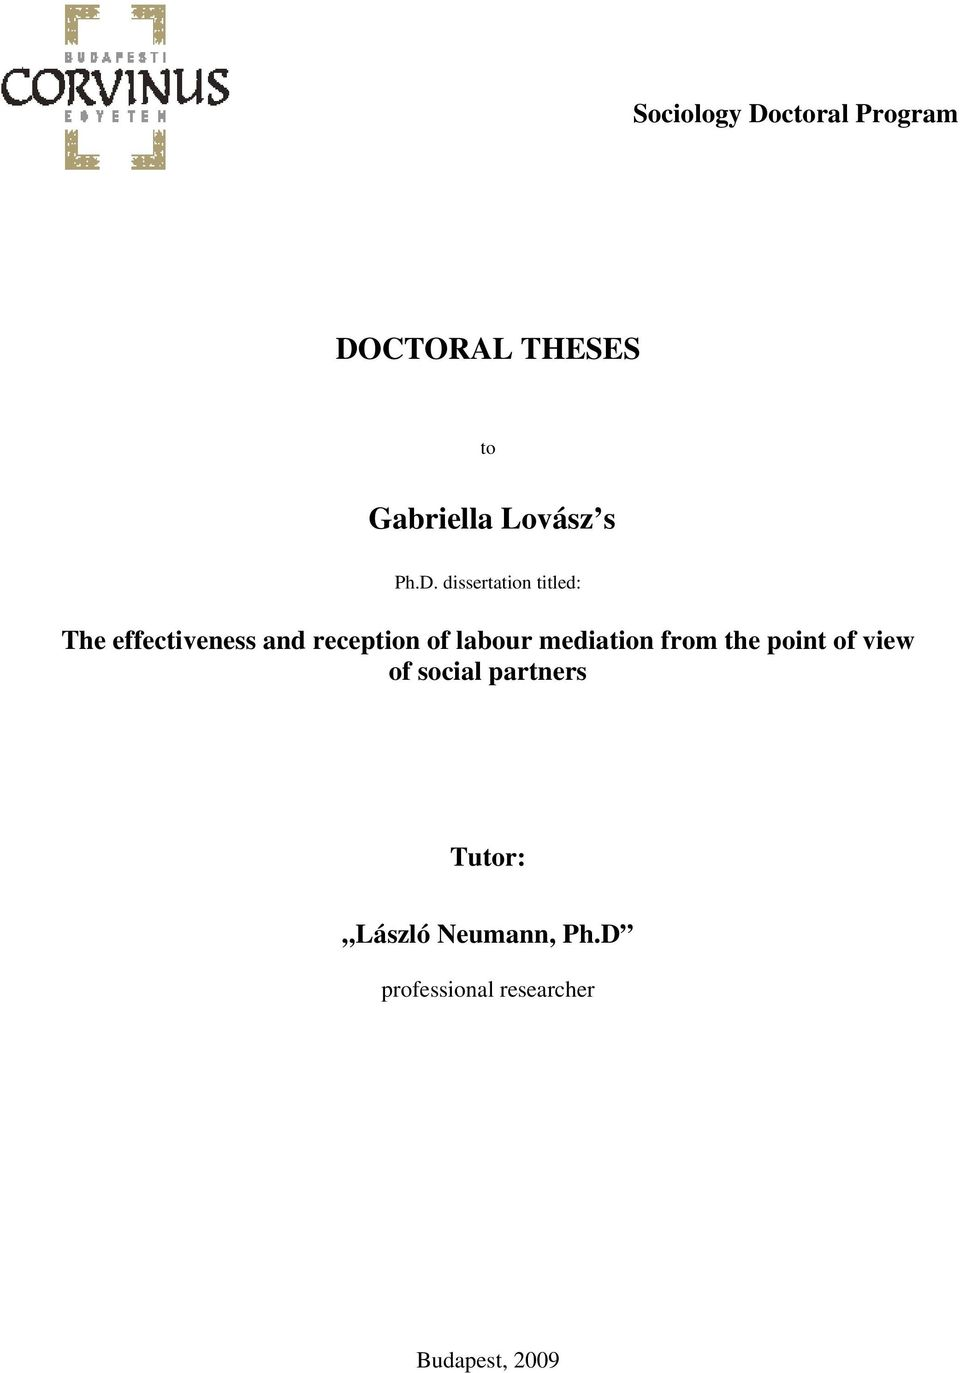 dissertation titled: The effectiveness and reception of labour